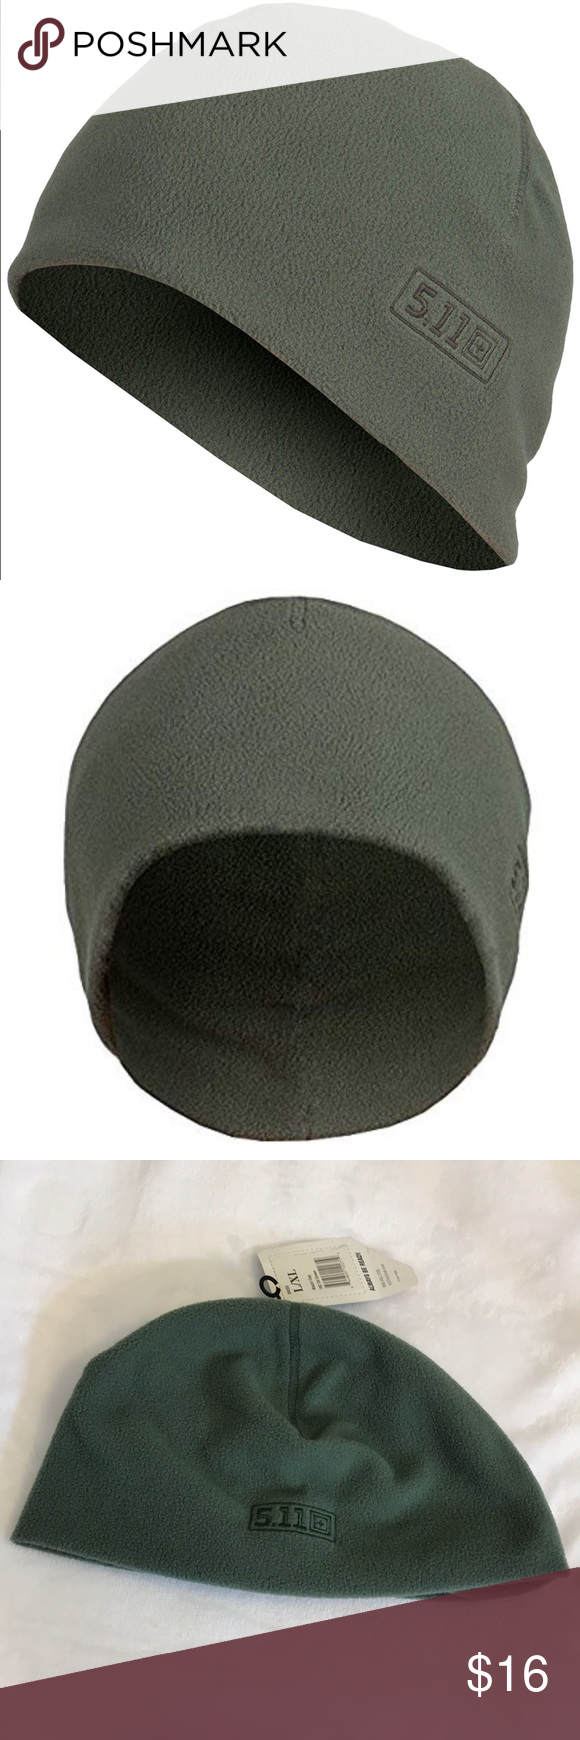 97174122d3f6c7 5.11 Tactical   Watch Cap Color is Od Green Size is L/XL Crafted from